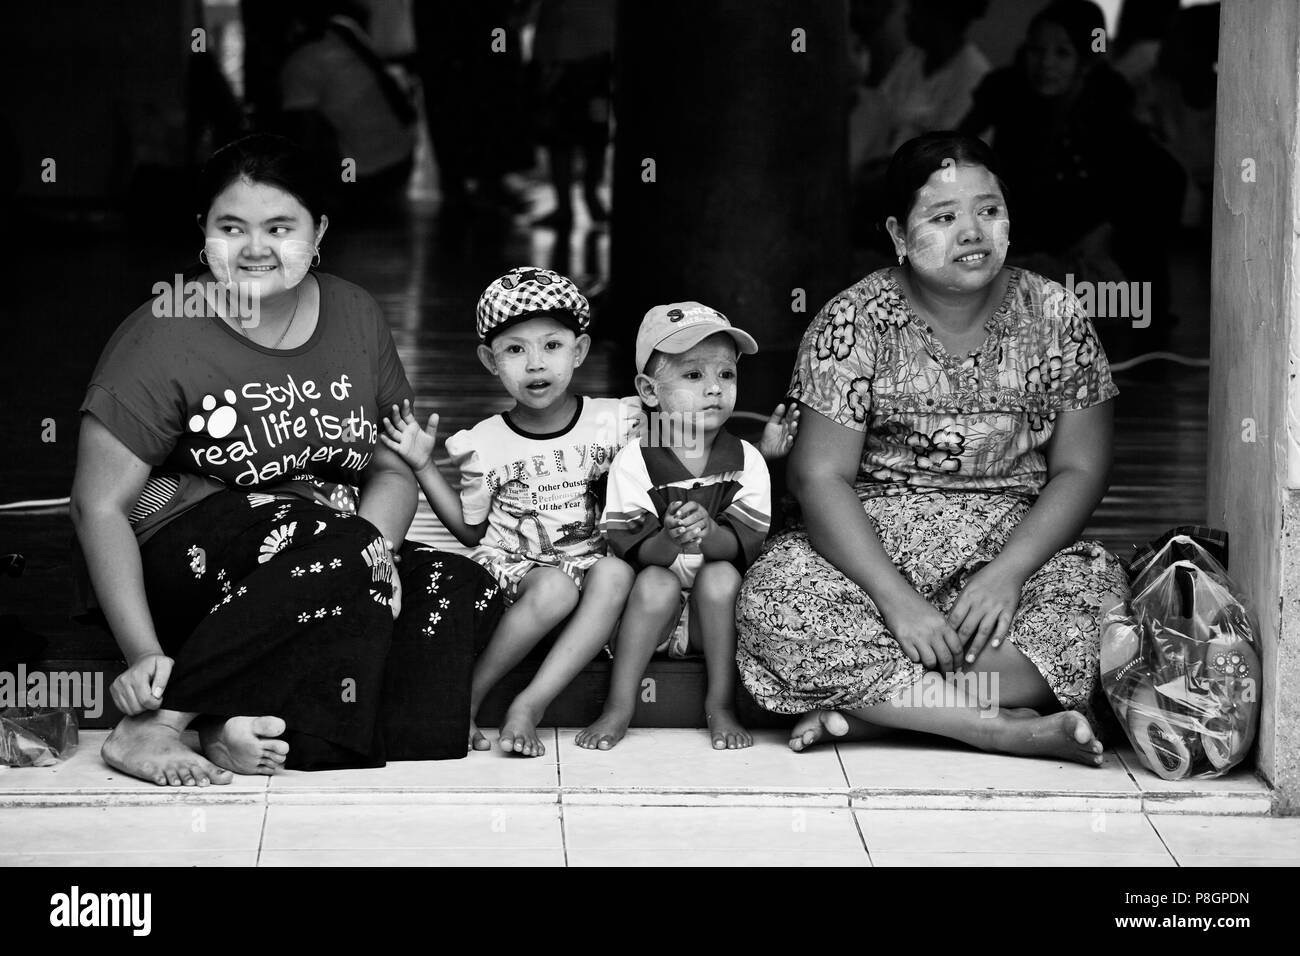 BURMESE WOMEN with their sons at the SHWEDAGON PAYA or PAGODA which dates from 1485 - YANGON, MYANAMAR Stock Photo